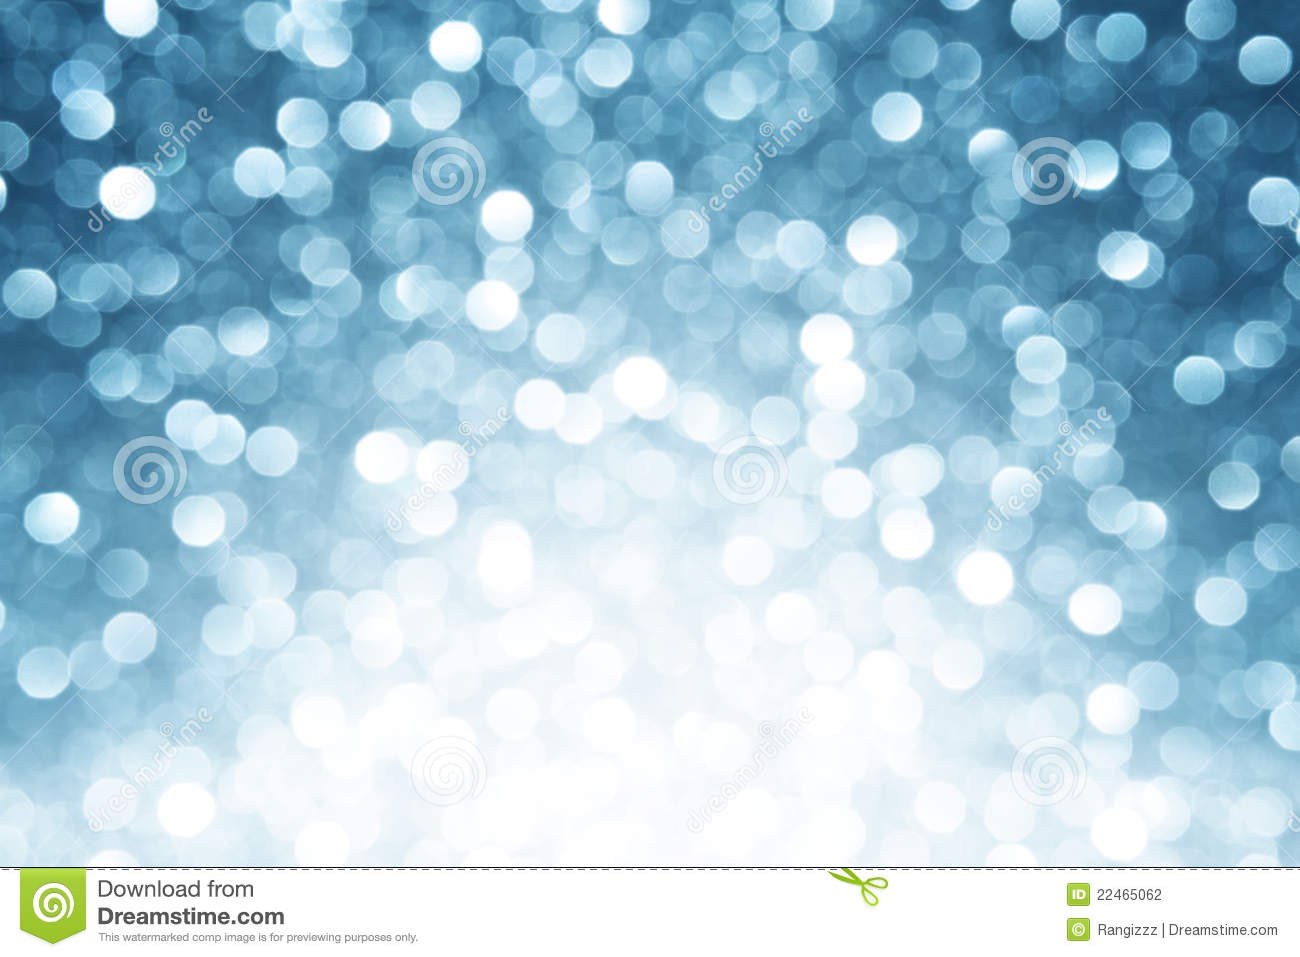 Blue Defocused Lights Background Stock Photography   Image  22465062